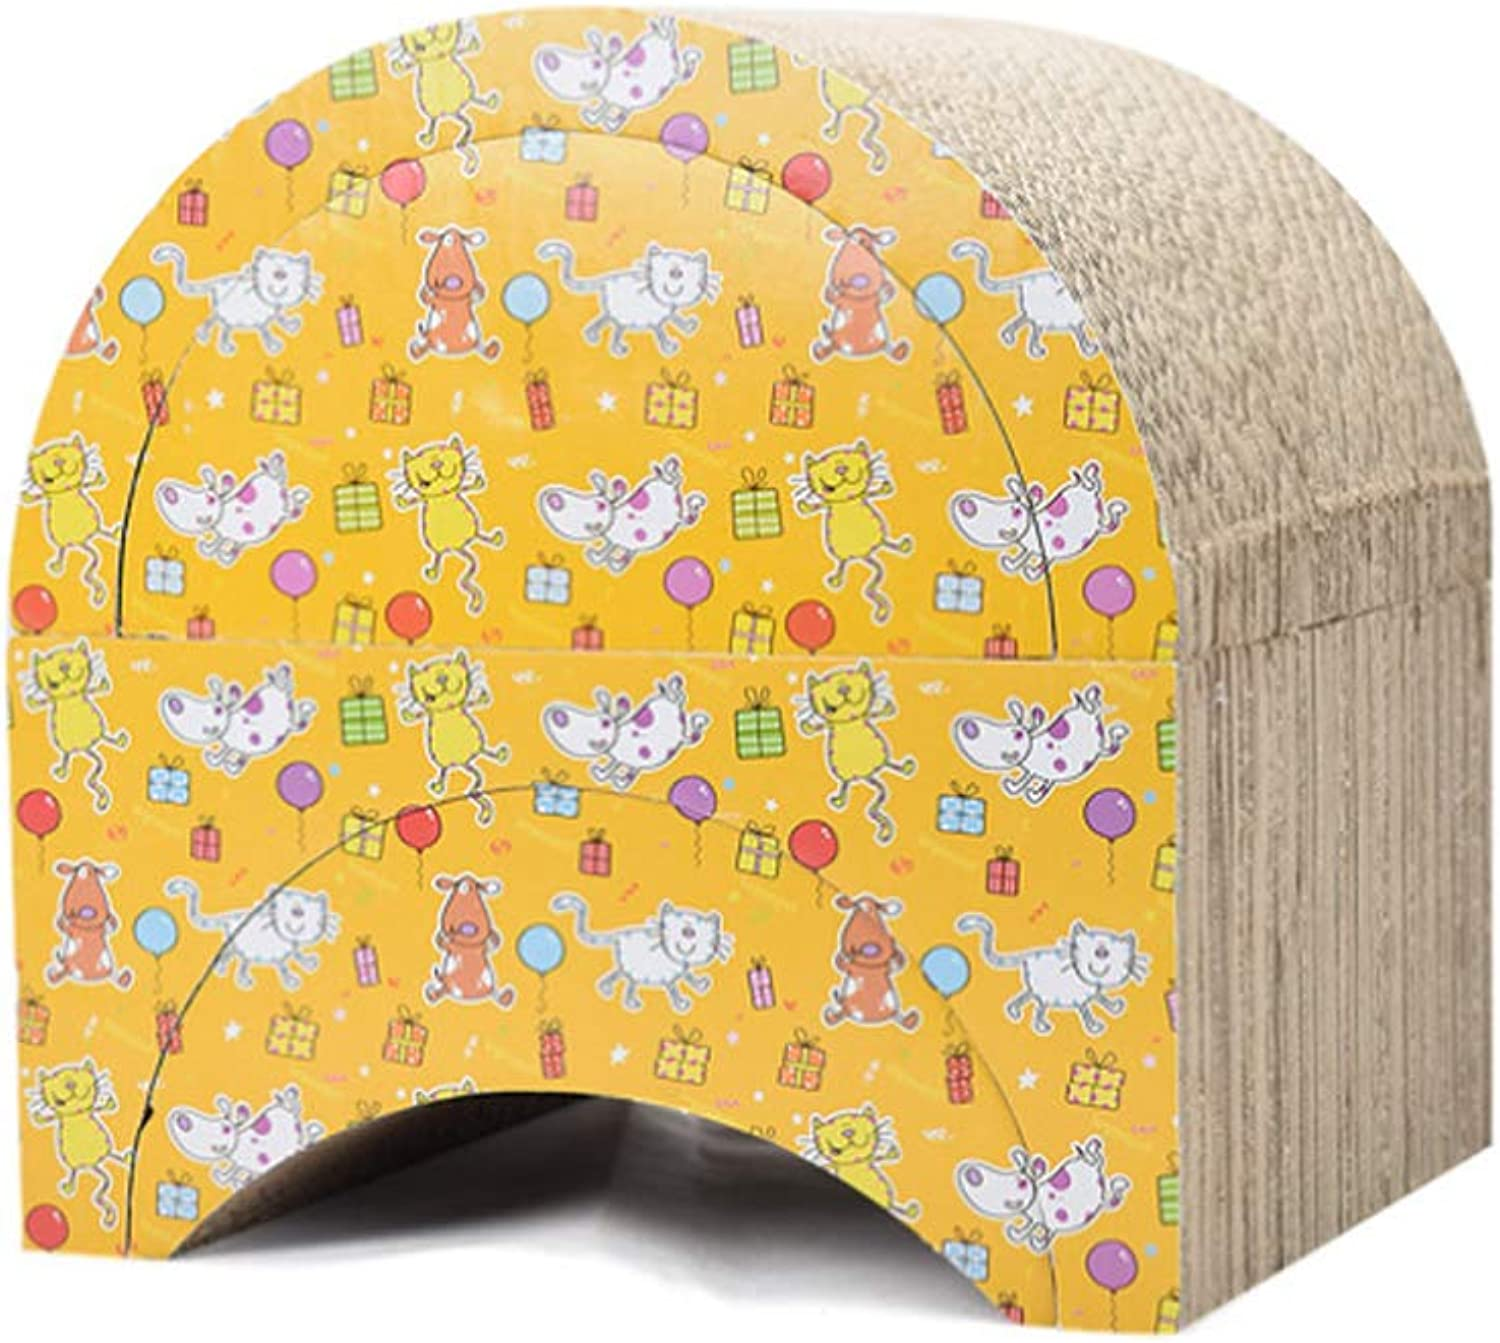 NDY Pet Toy Cat Paper Claws Building Blocks Combination Arched Brown Cat Scratch Board Corrugated Paper Venting Play